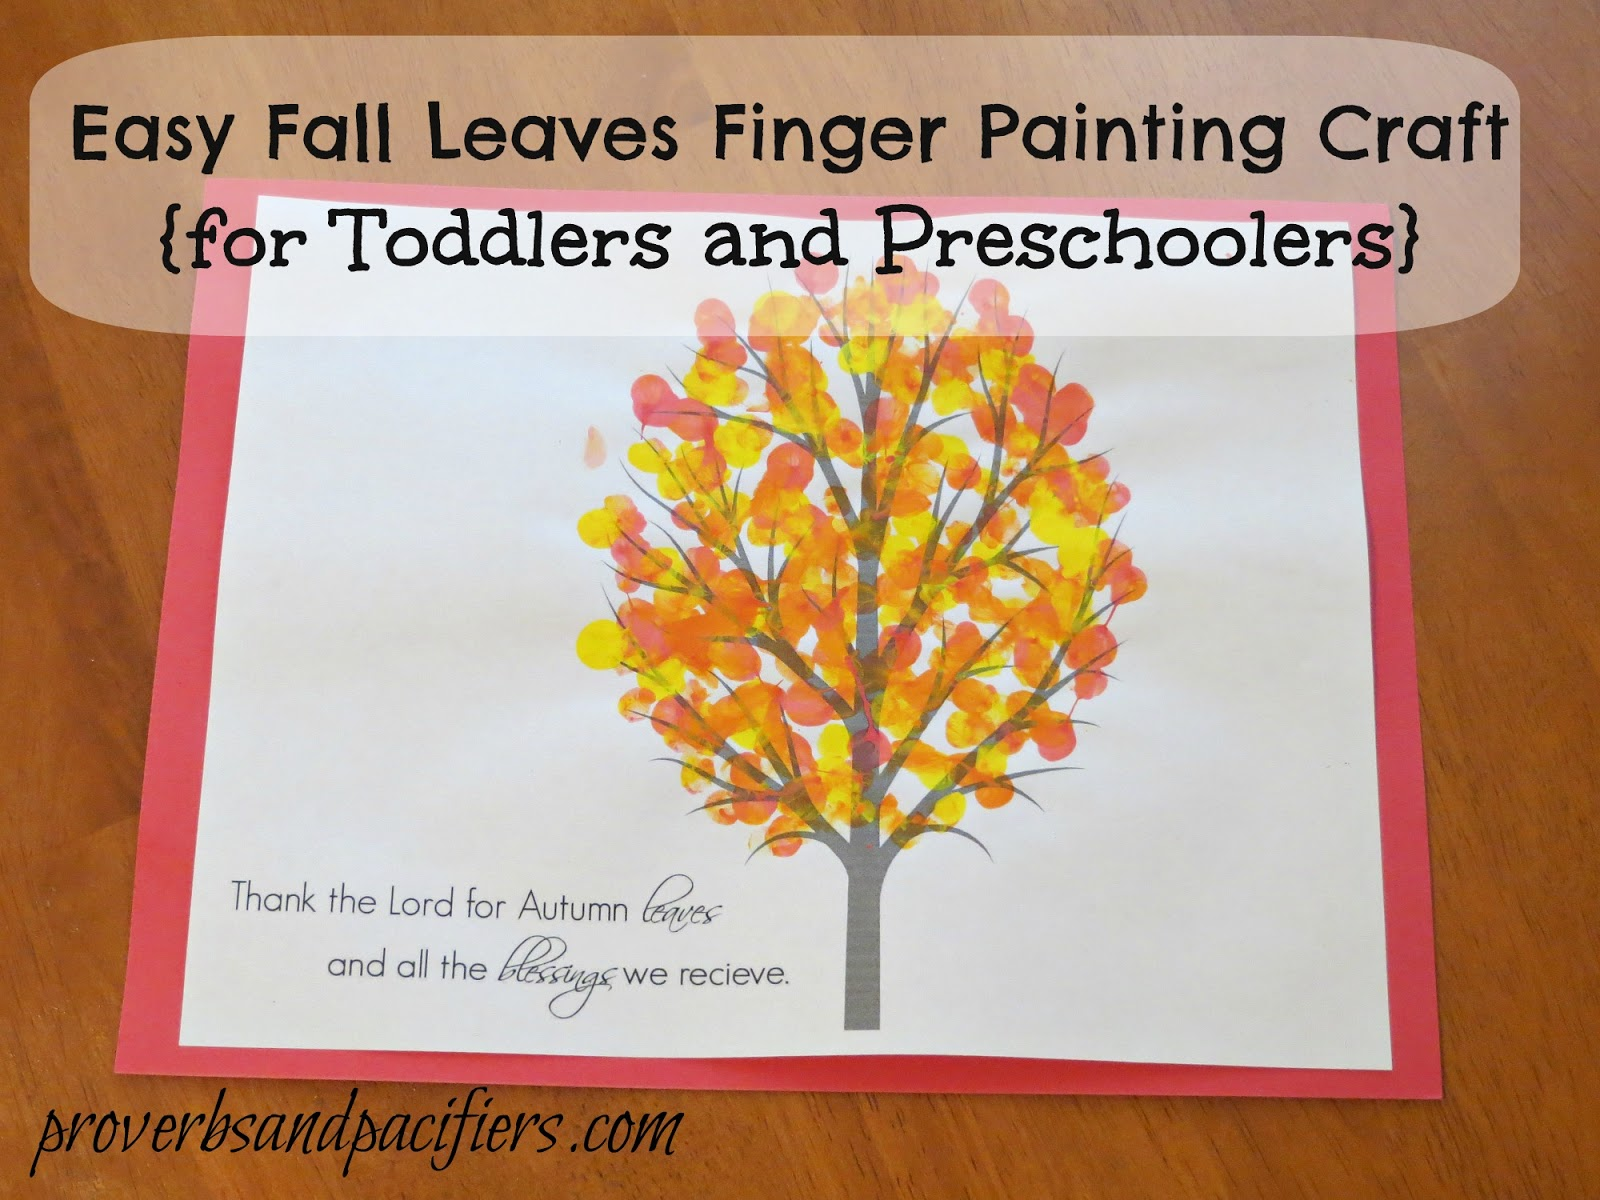 89 printable fall crafts for kids printable fall crafts for Simple fall crafts for kids